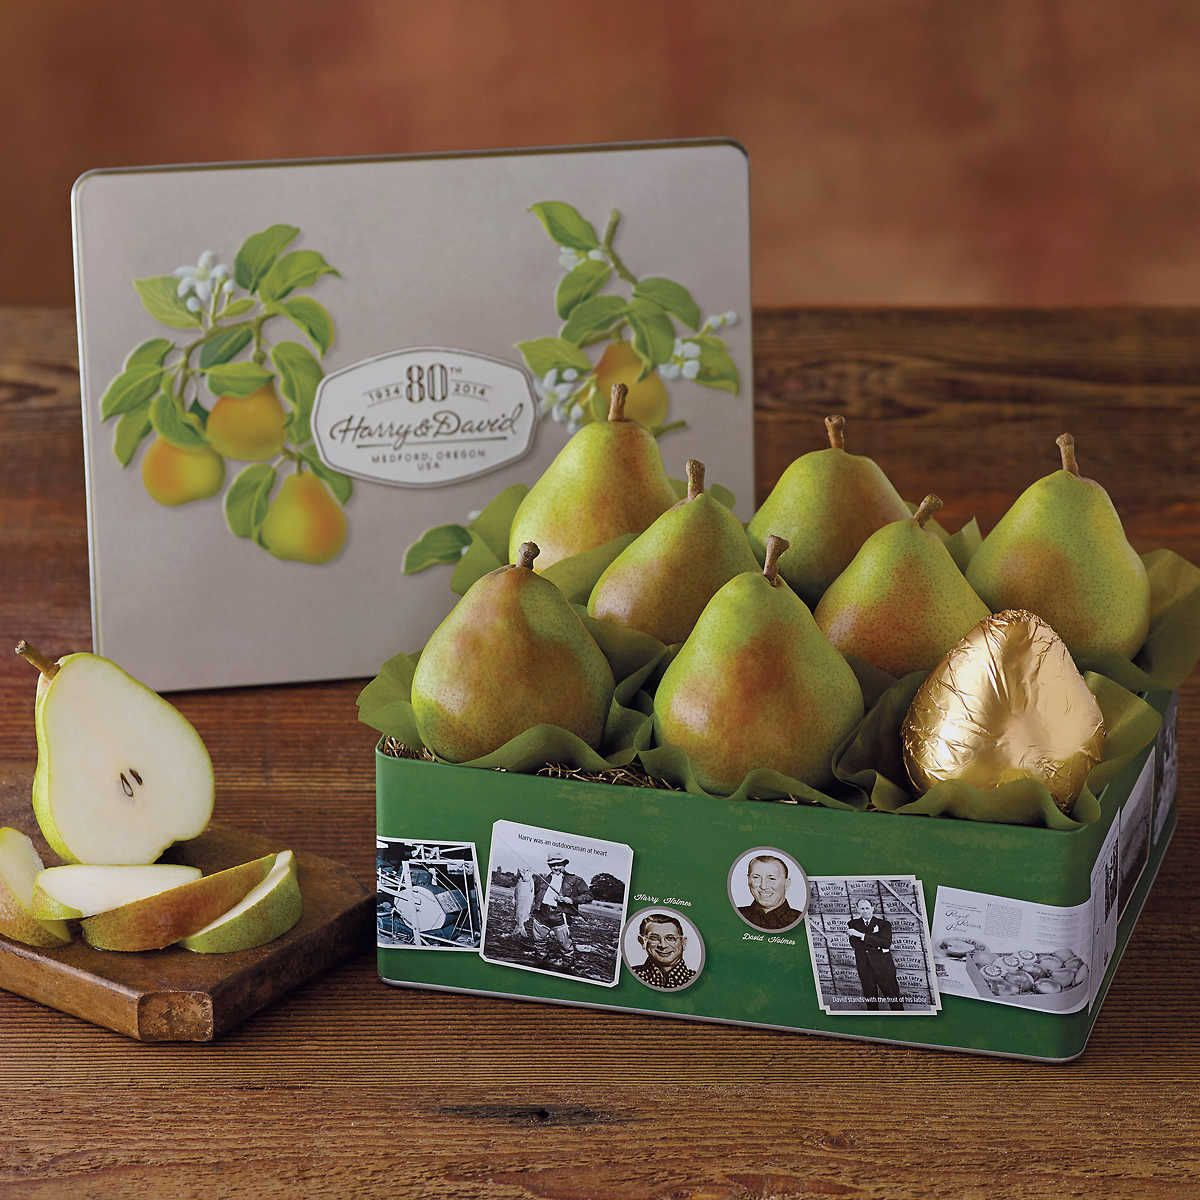 We've been growing premium Royal Riviera® Pears in our